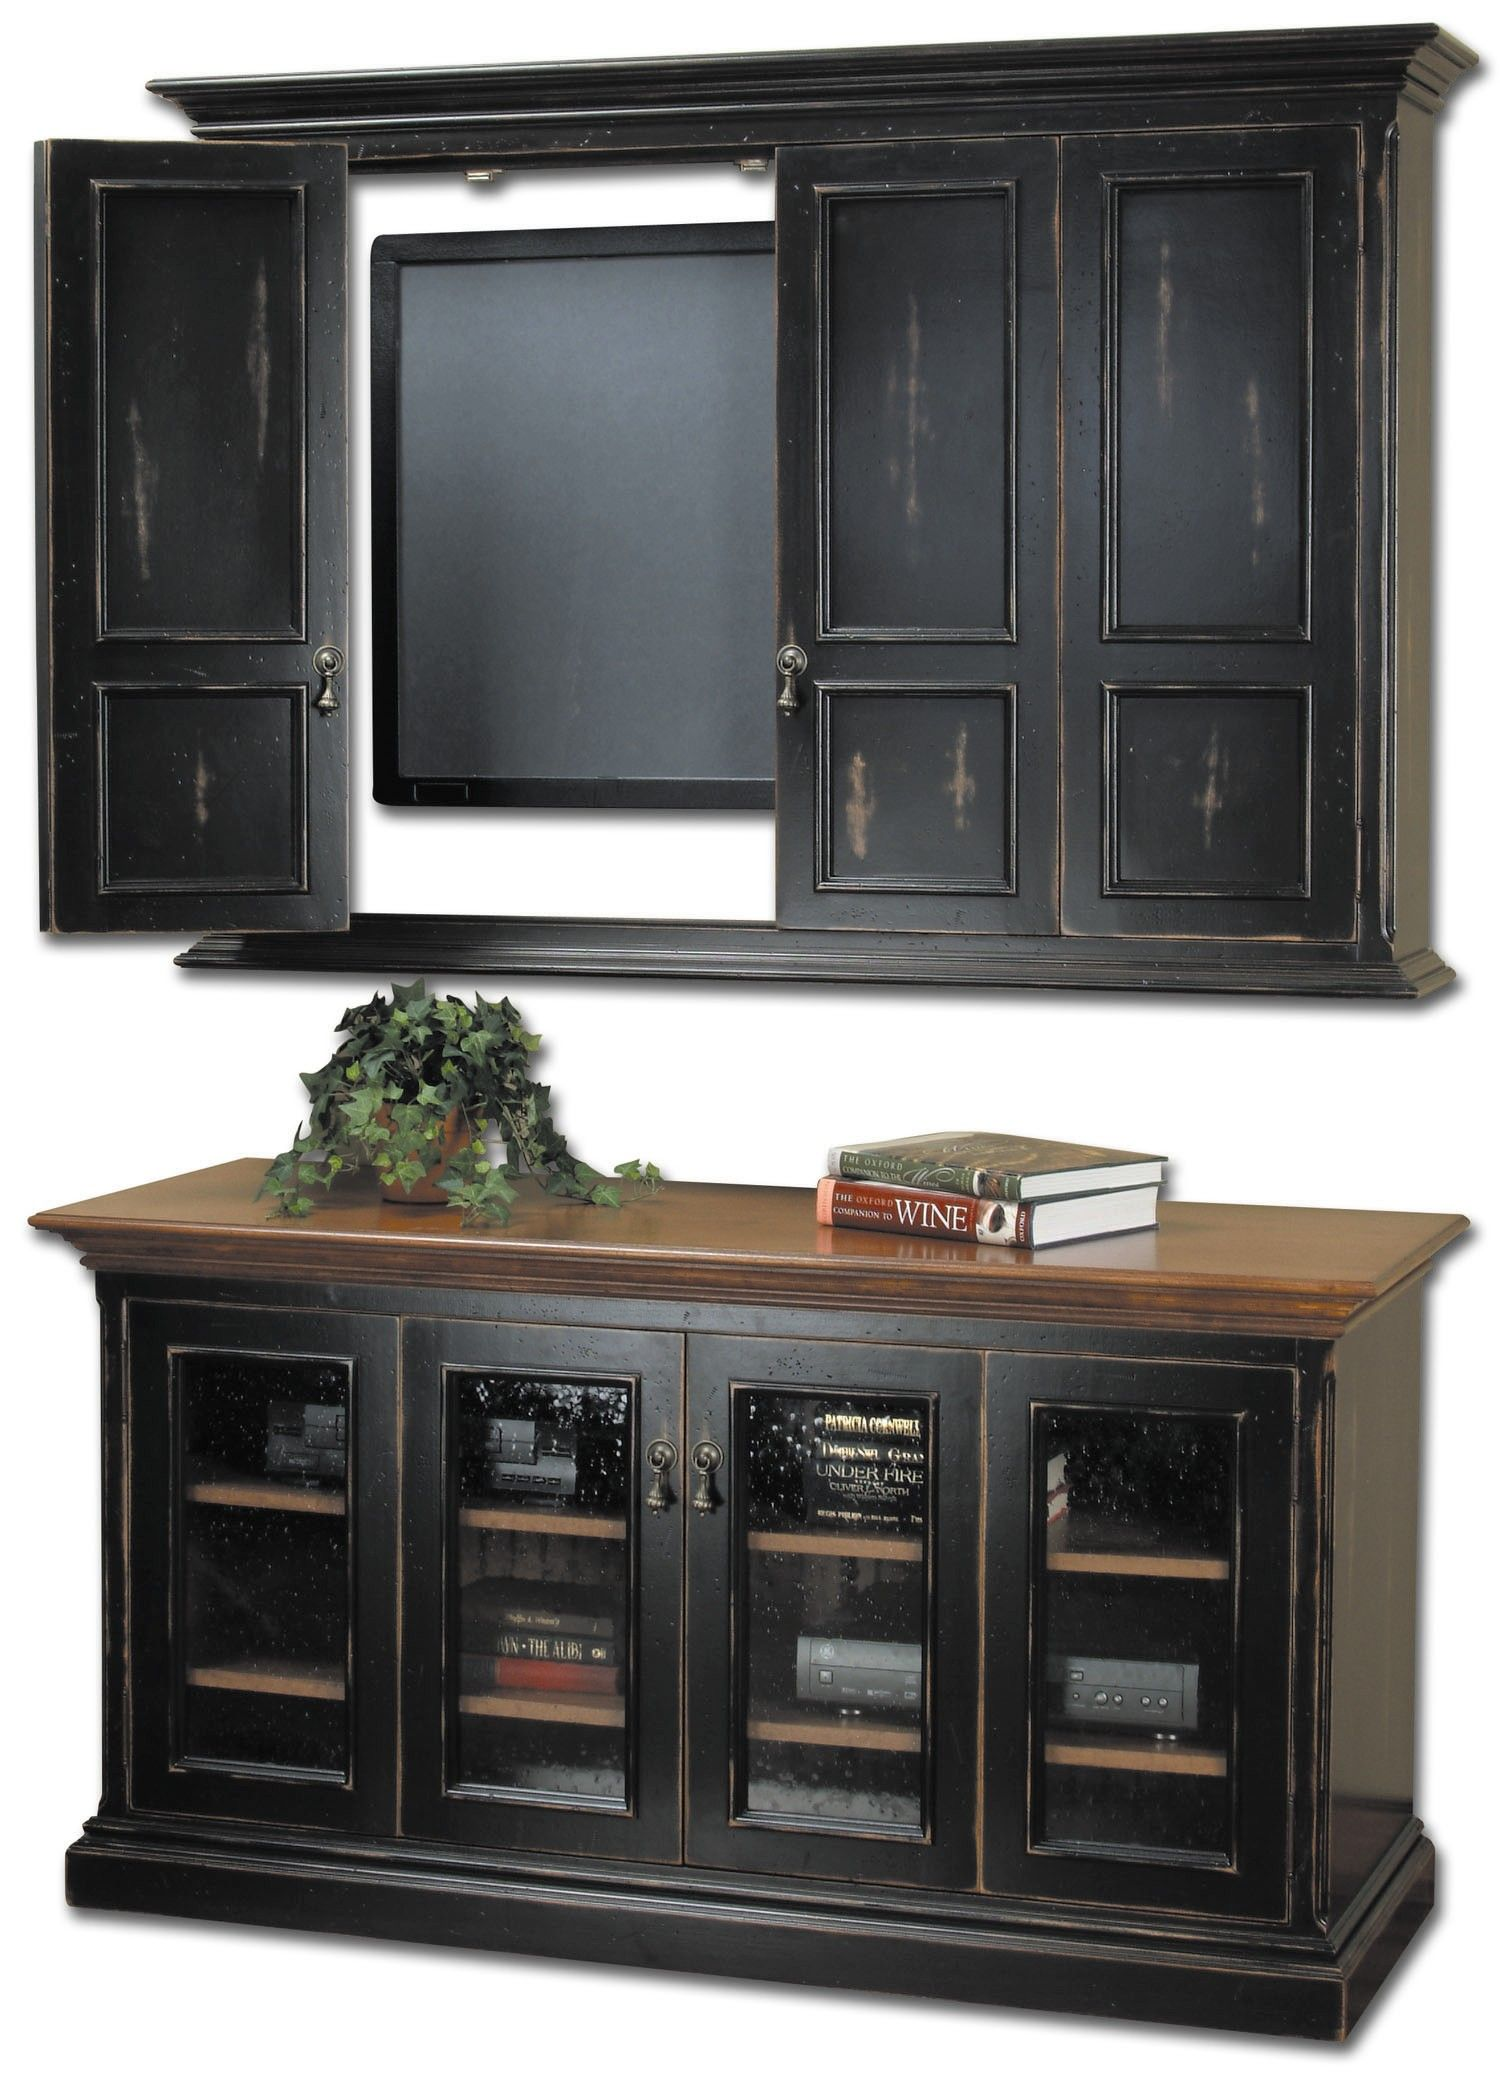 Country Classics Painted Furniture, Hillsboro Flat Screen TV Wall Cabinet